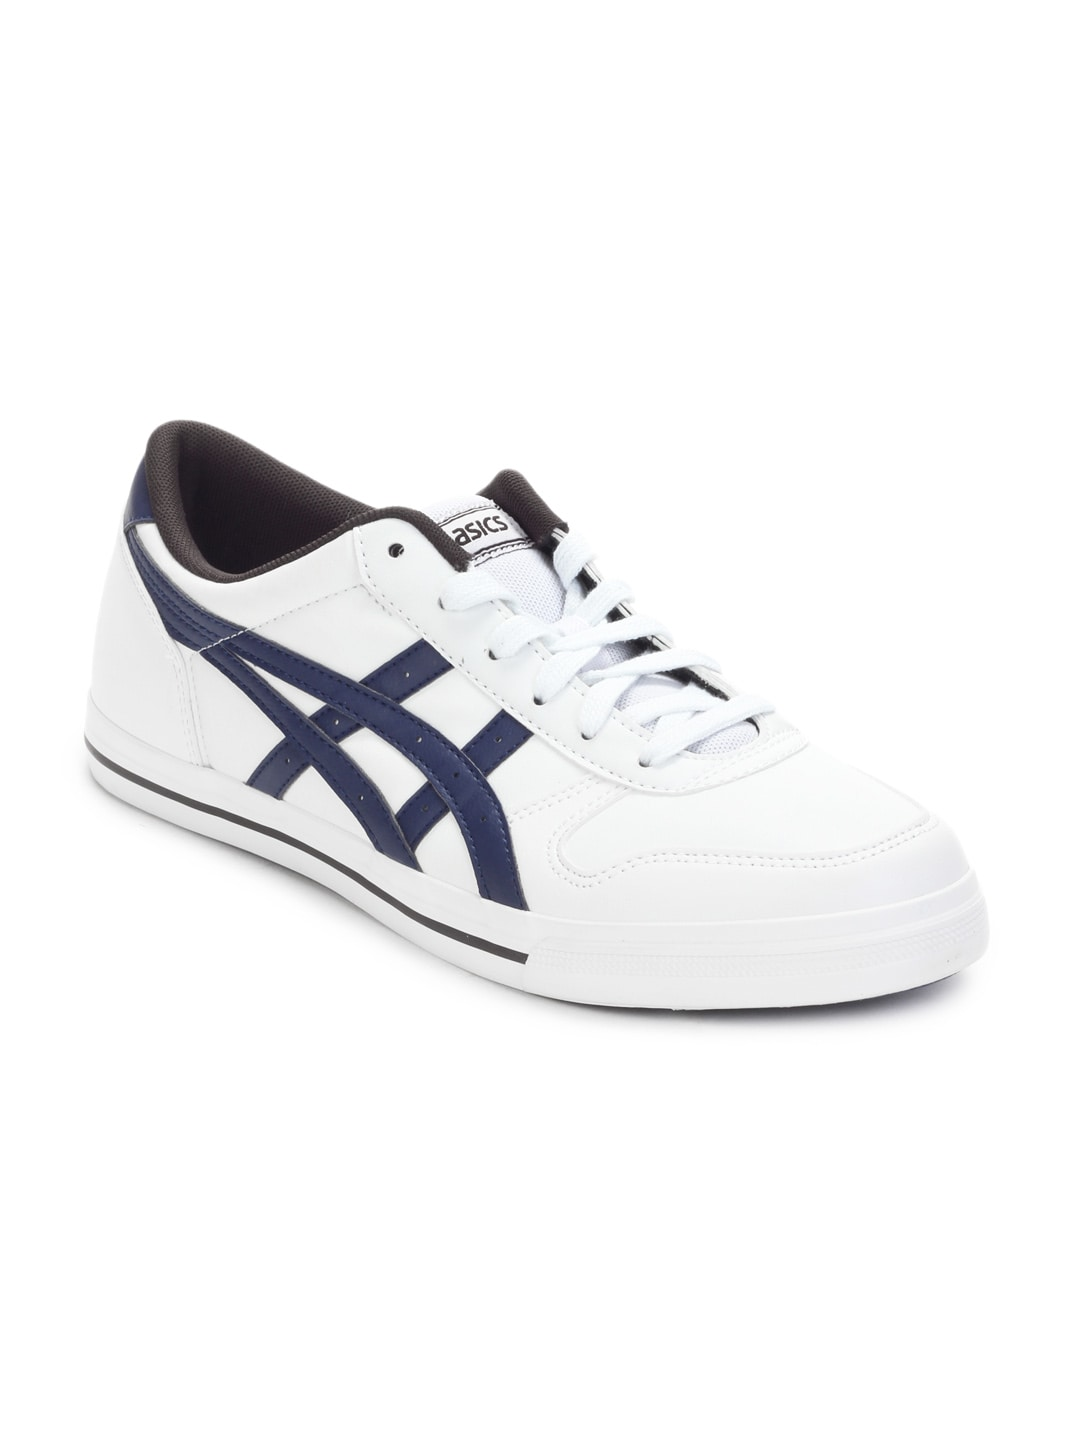 Asics Mens All White Shoe